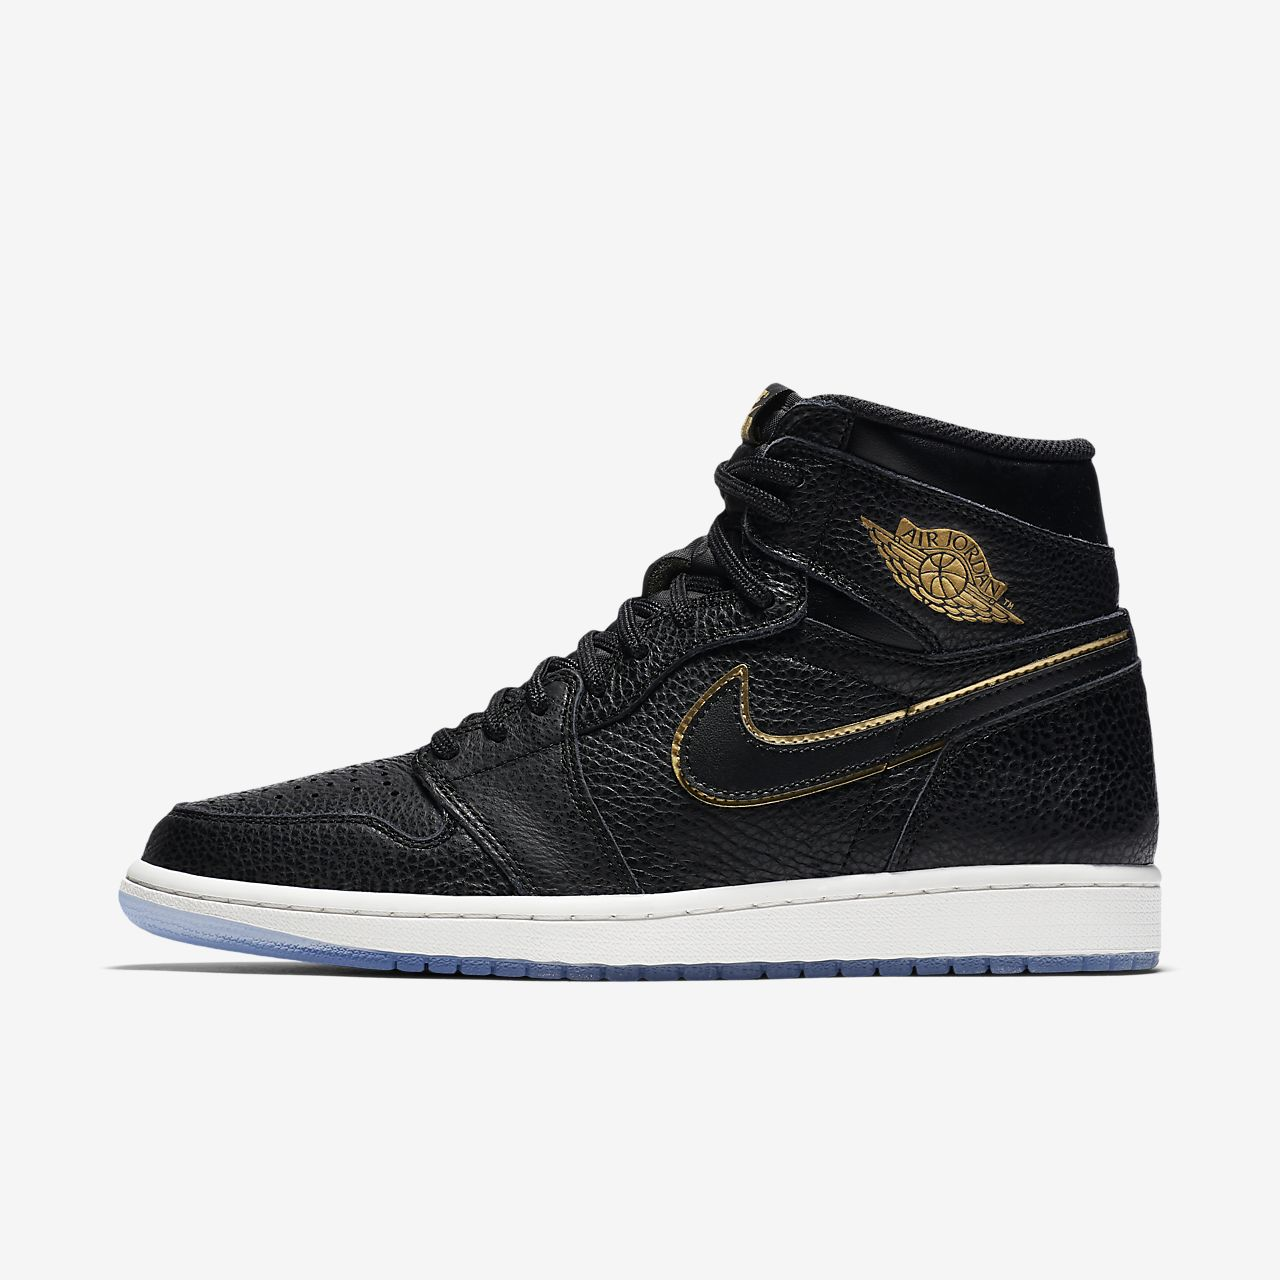 ... Air Jordan 1 Retro High OG Shoe